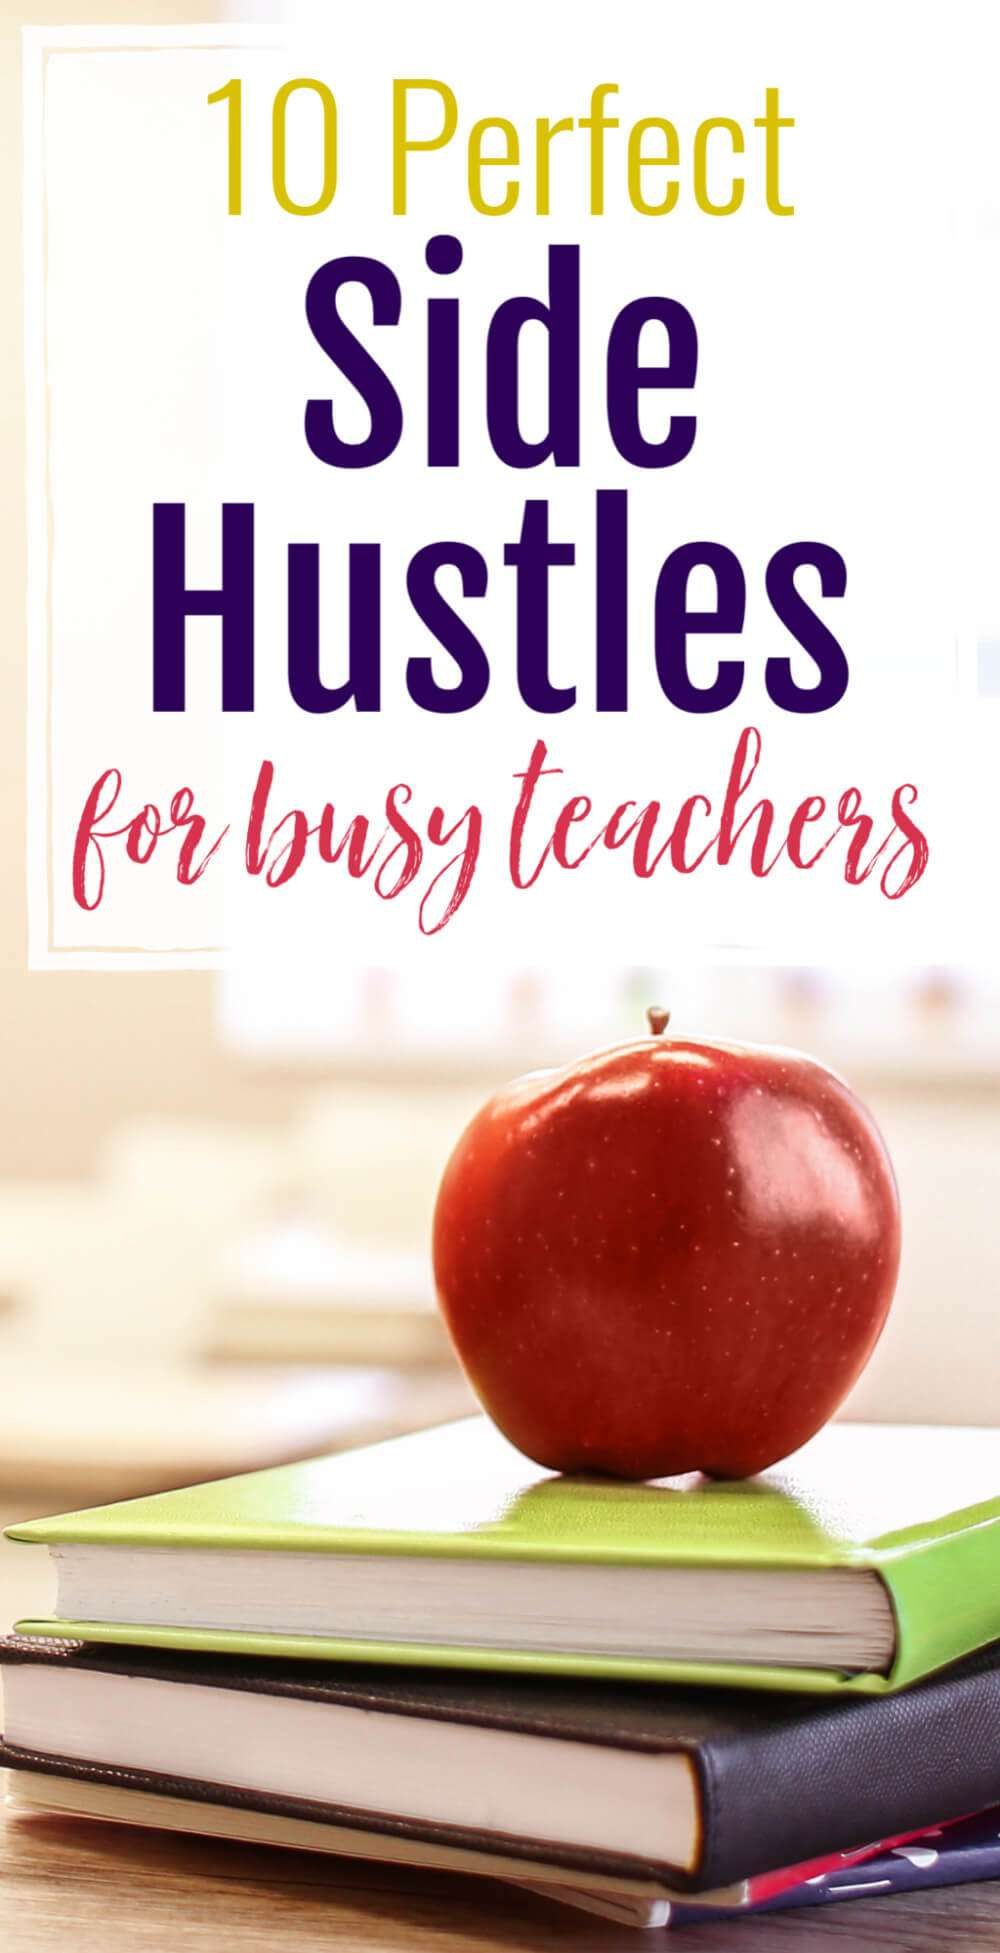 10 Perfect Side Hustles for Busy Teachers